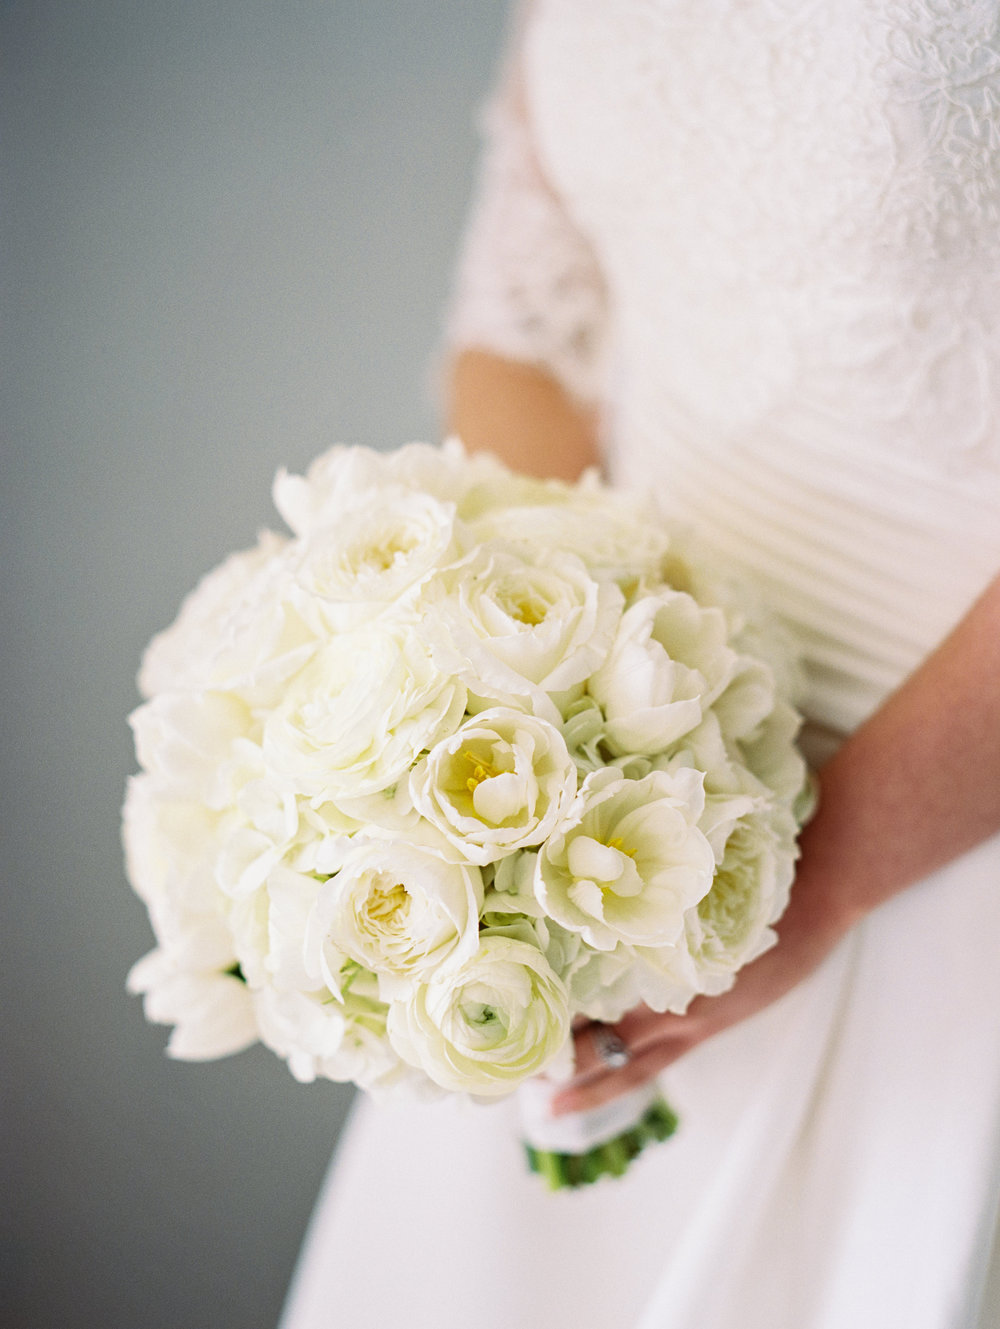 19 bridal bouquet types which wedding bouquet style is - 640×851